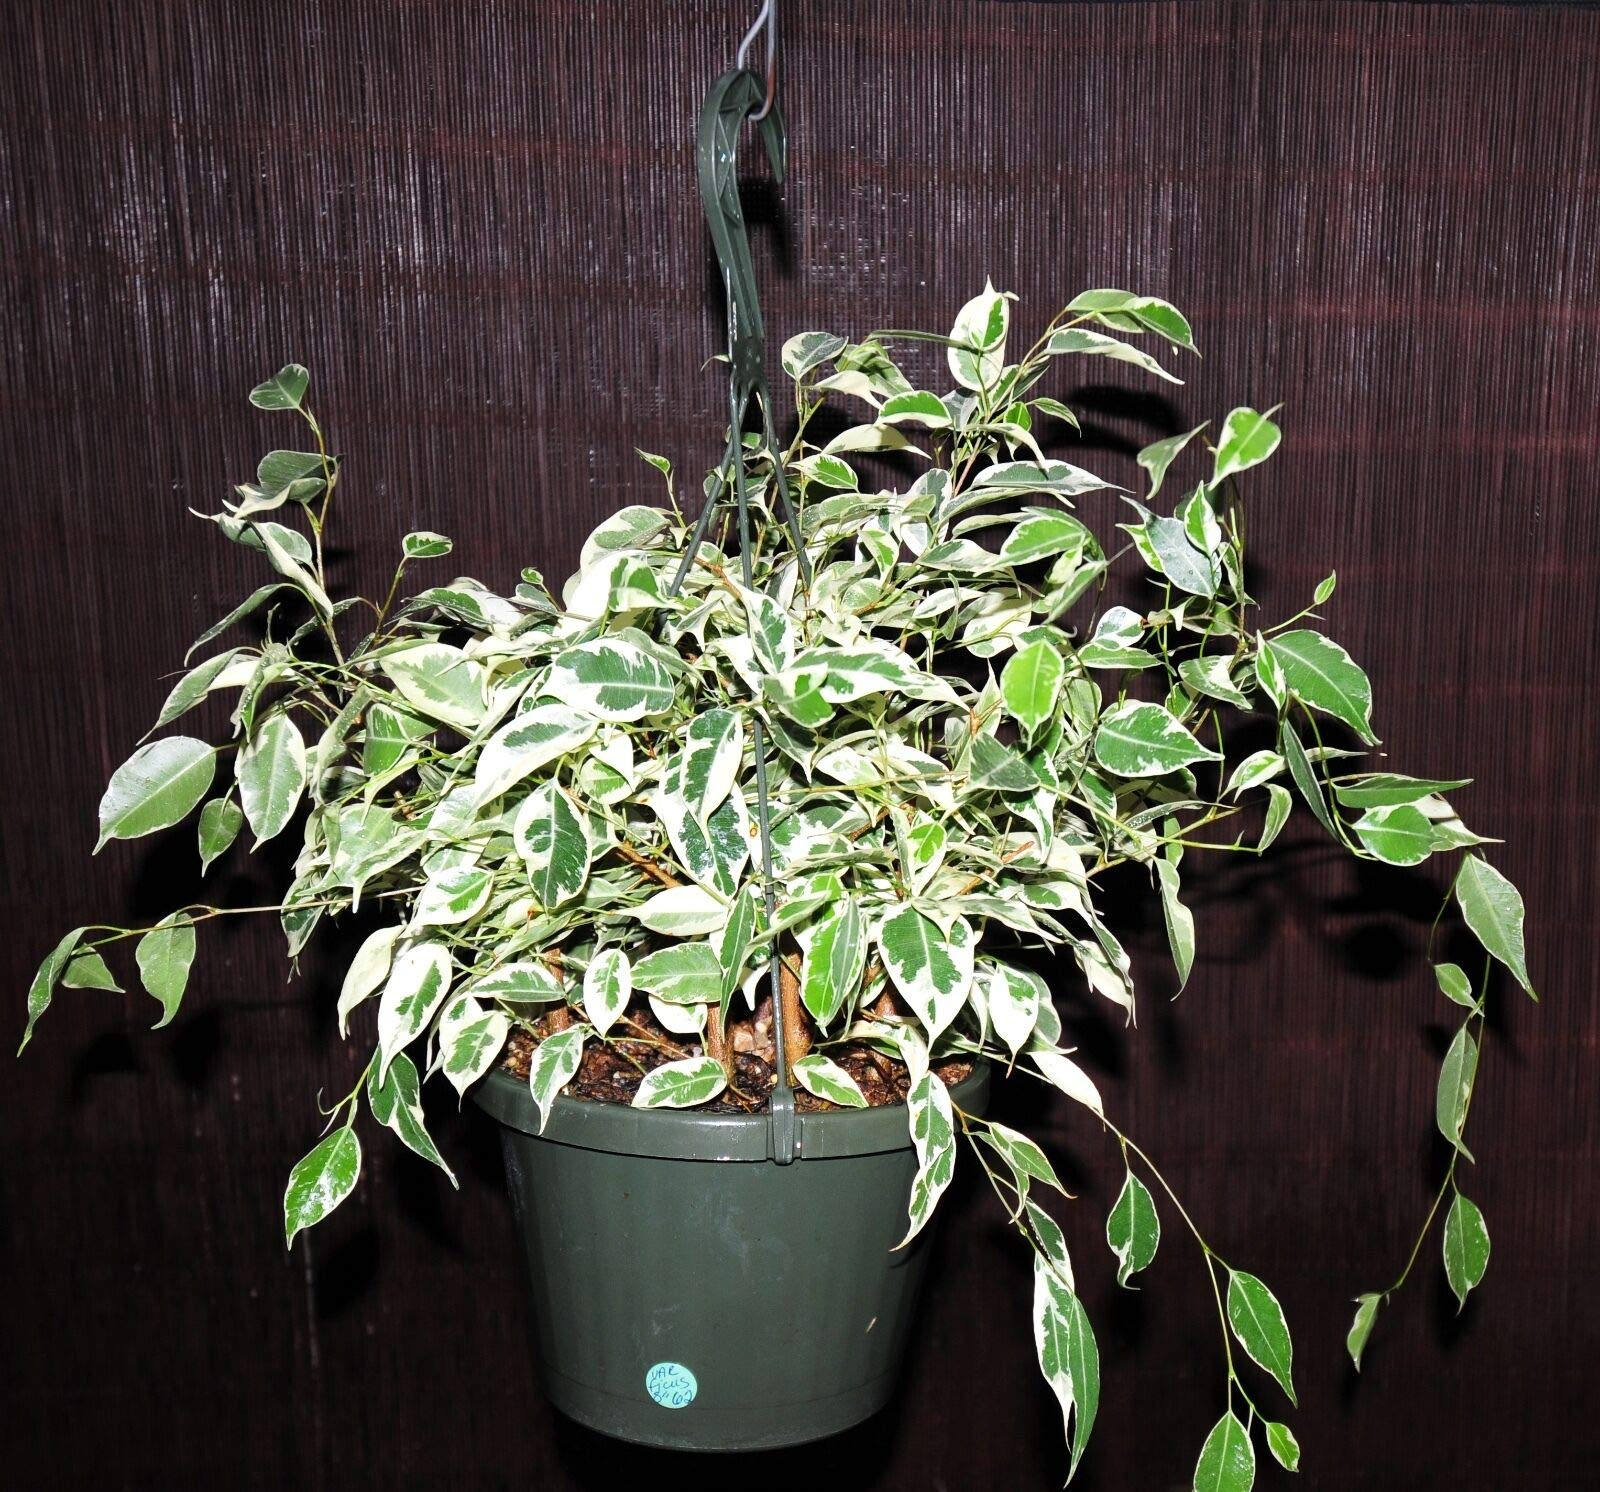 Huge 8'' Variegated Ficus Benjamin Weeping Fig Tree or Bonsai Tree Very Mature! (Premium Quality) by AY-Premium